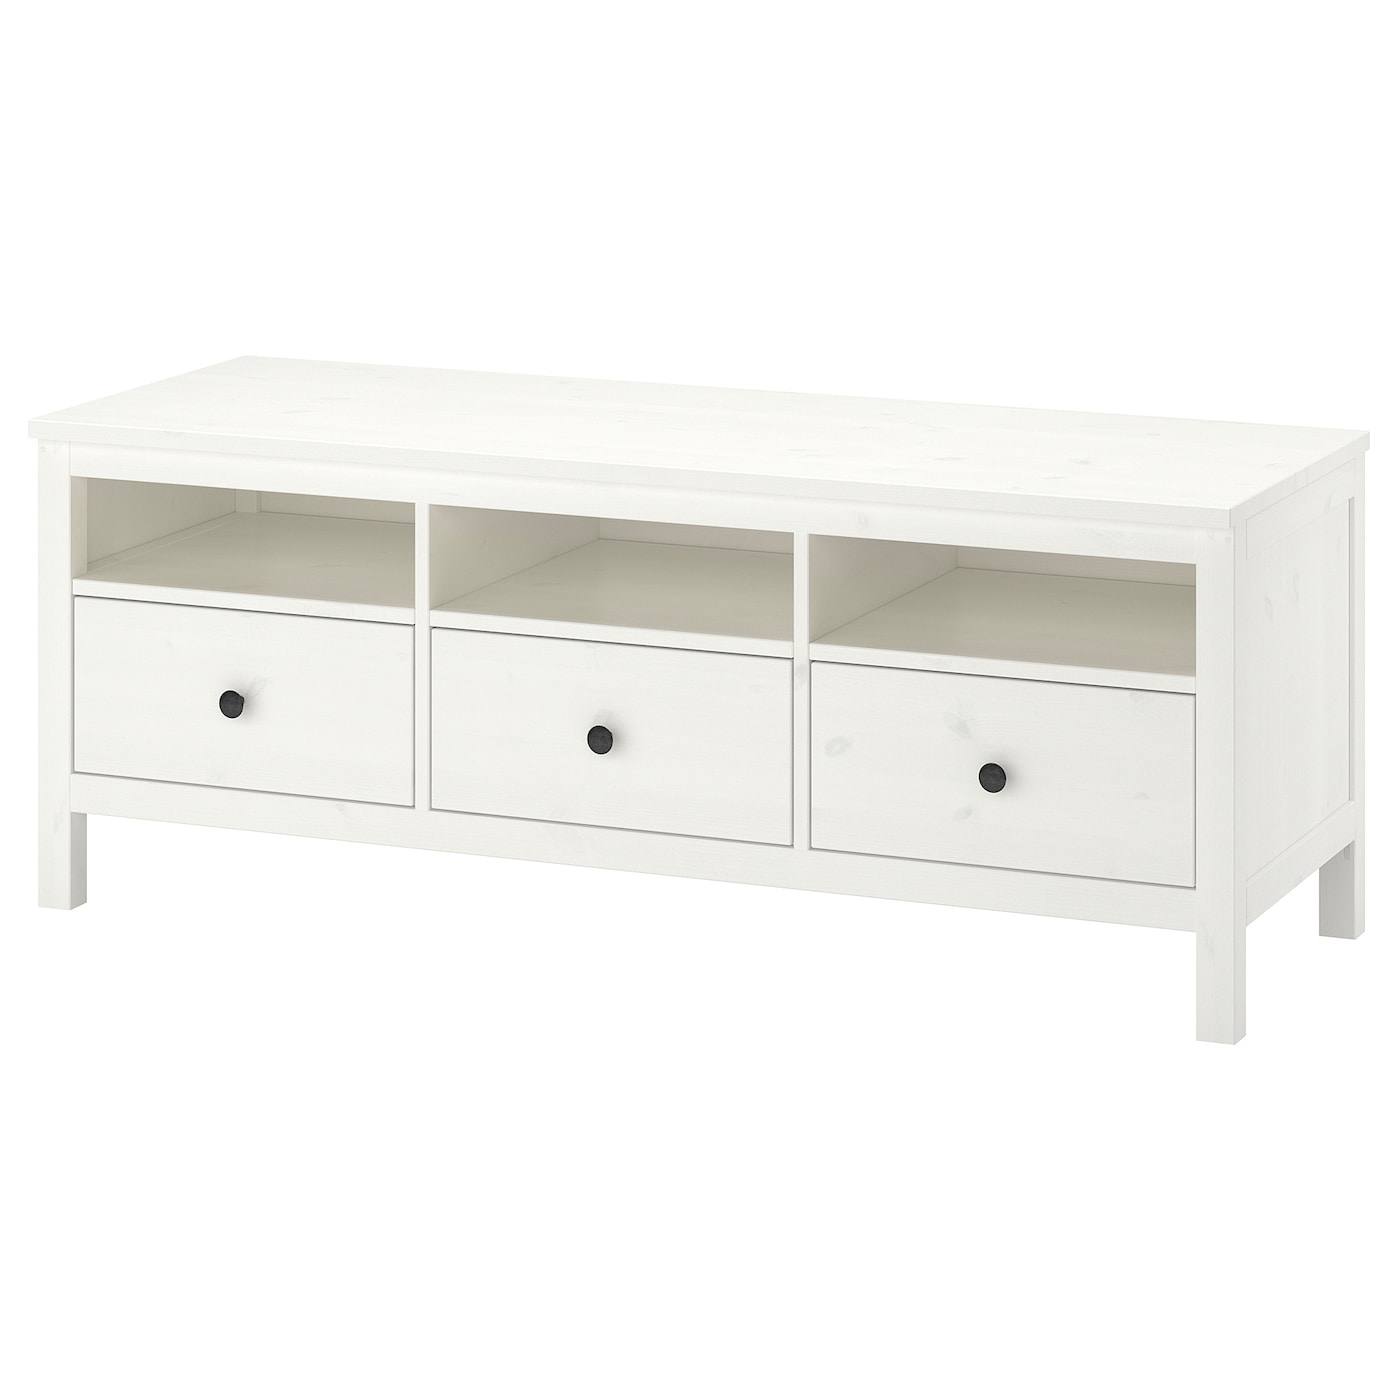 Tv Kast Meubel Ikea.Buy Hemnes Tv Bench White Stain Online Ikea